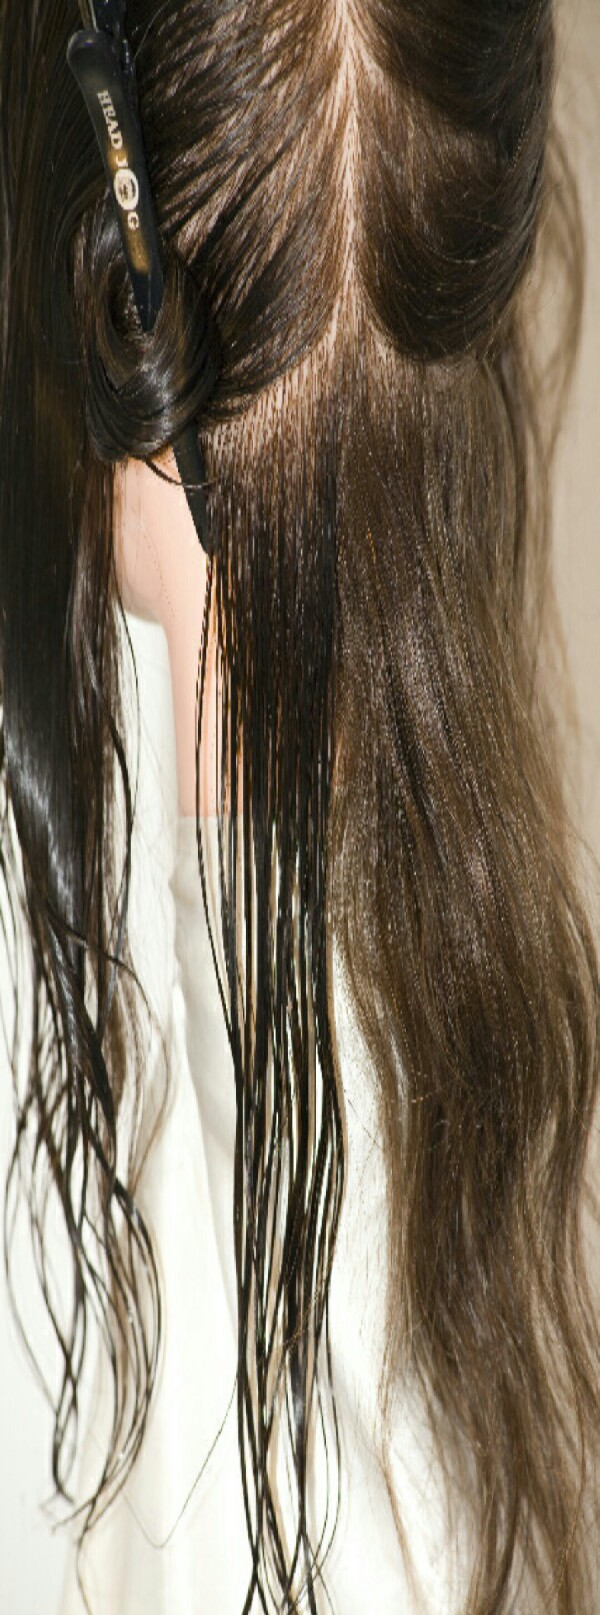 Heat up a few spoonfuls of coconut oil (depends on hair) in the microwave until its a liquid. Then apply to every section of your dry hair!